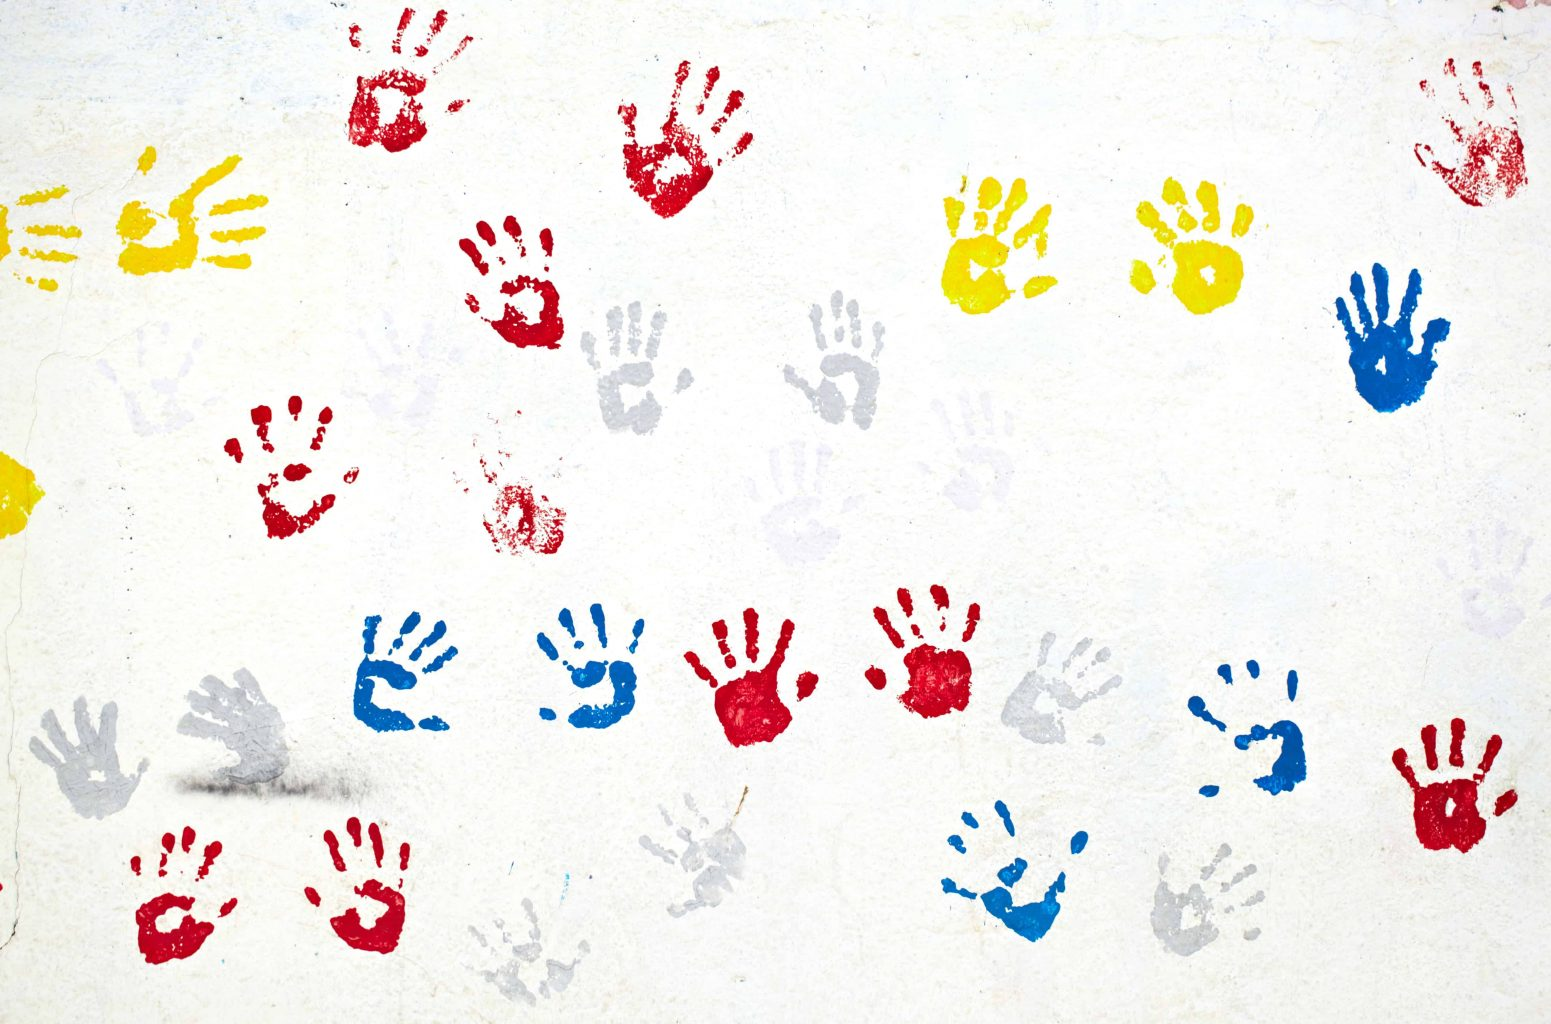 Graffiti with multiple colored hand prints on the white wall